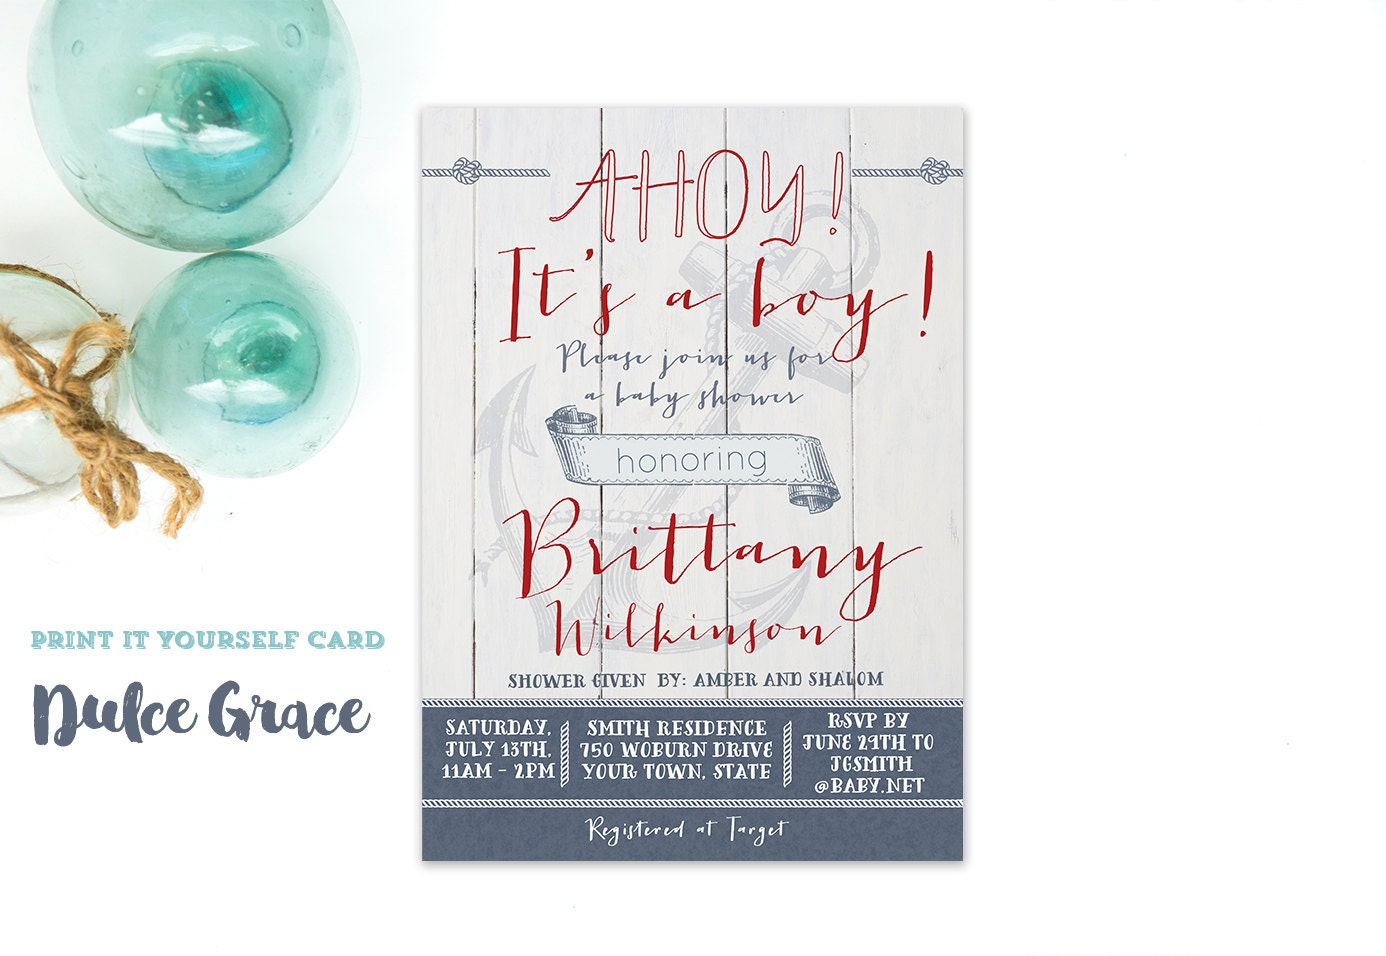 ahoy its a boy baby shower invitations red navy baby shower